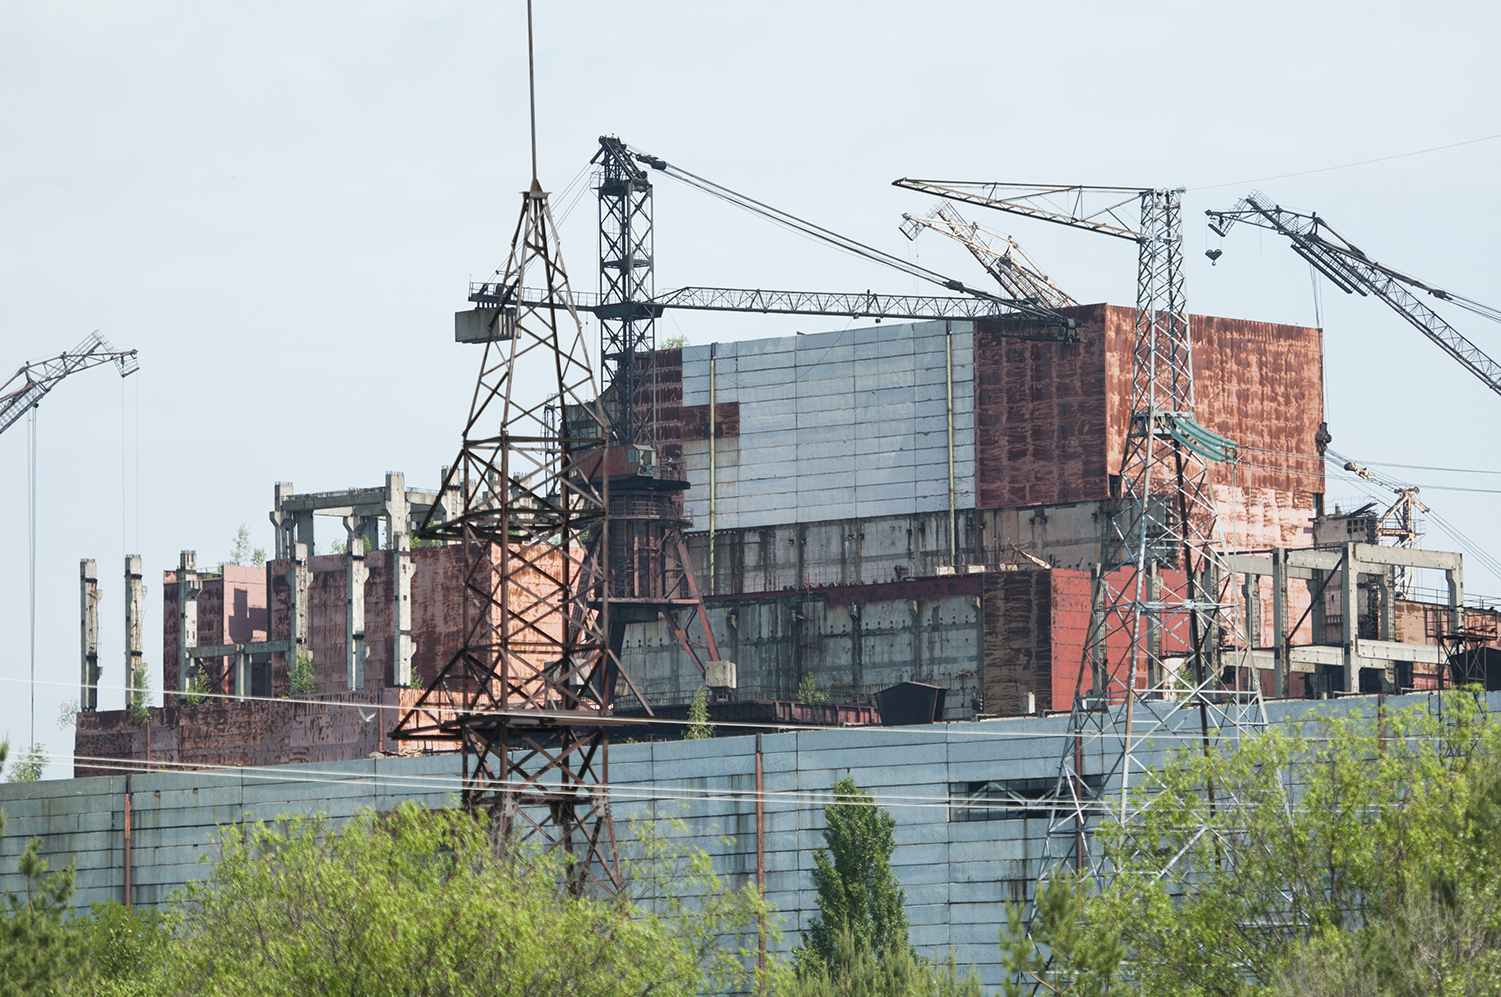 Cranes that were used to build the reactors 5 and 6 of the Chernobyl's nuclear power